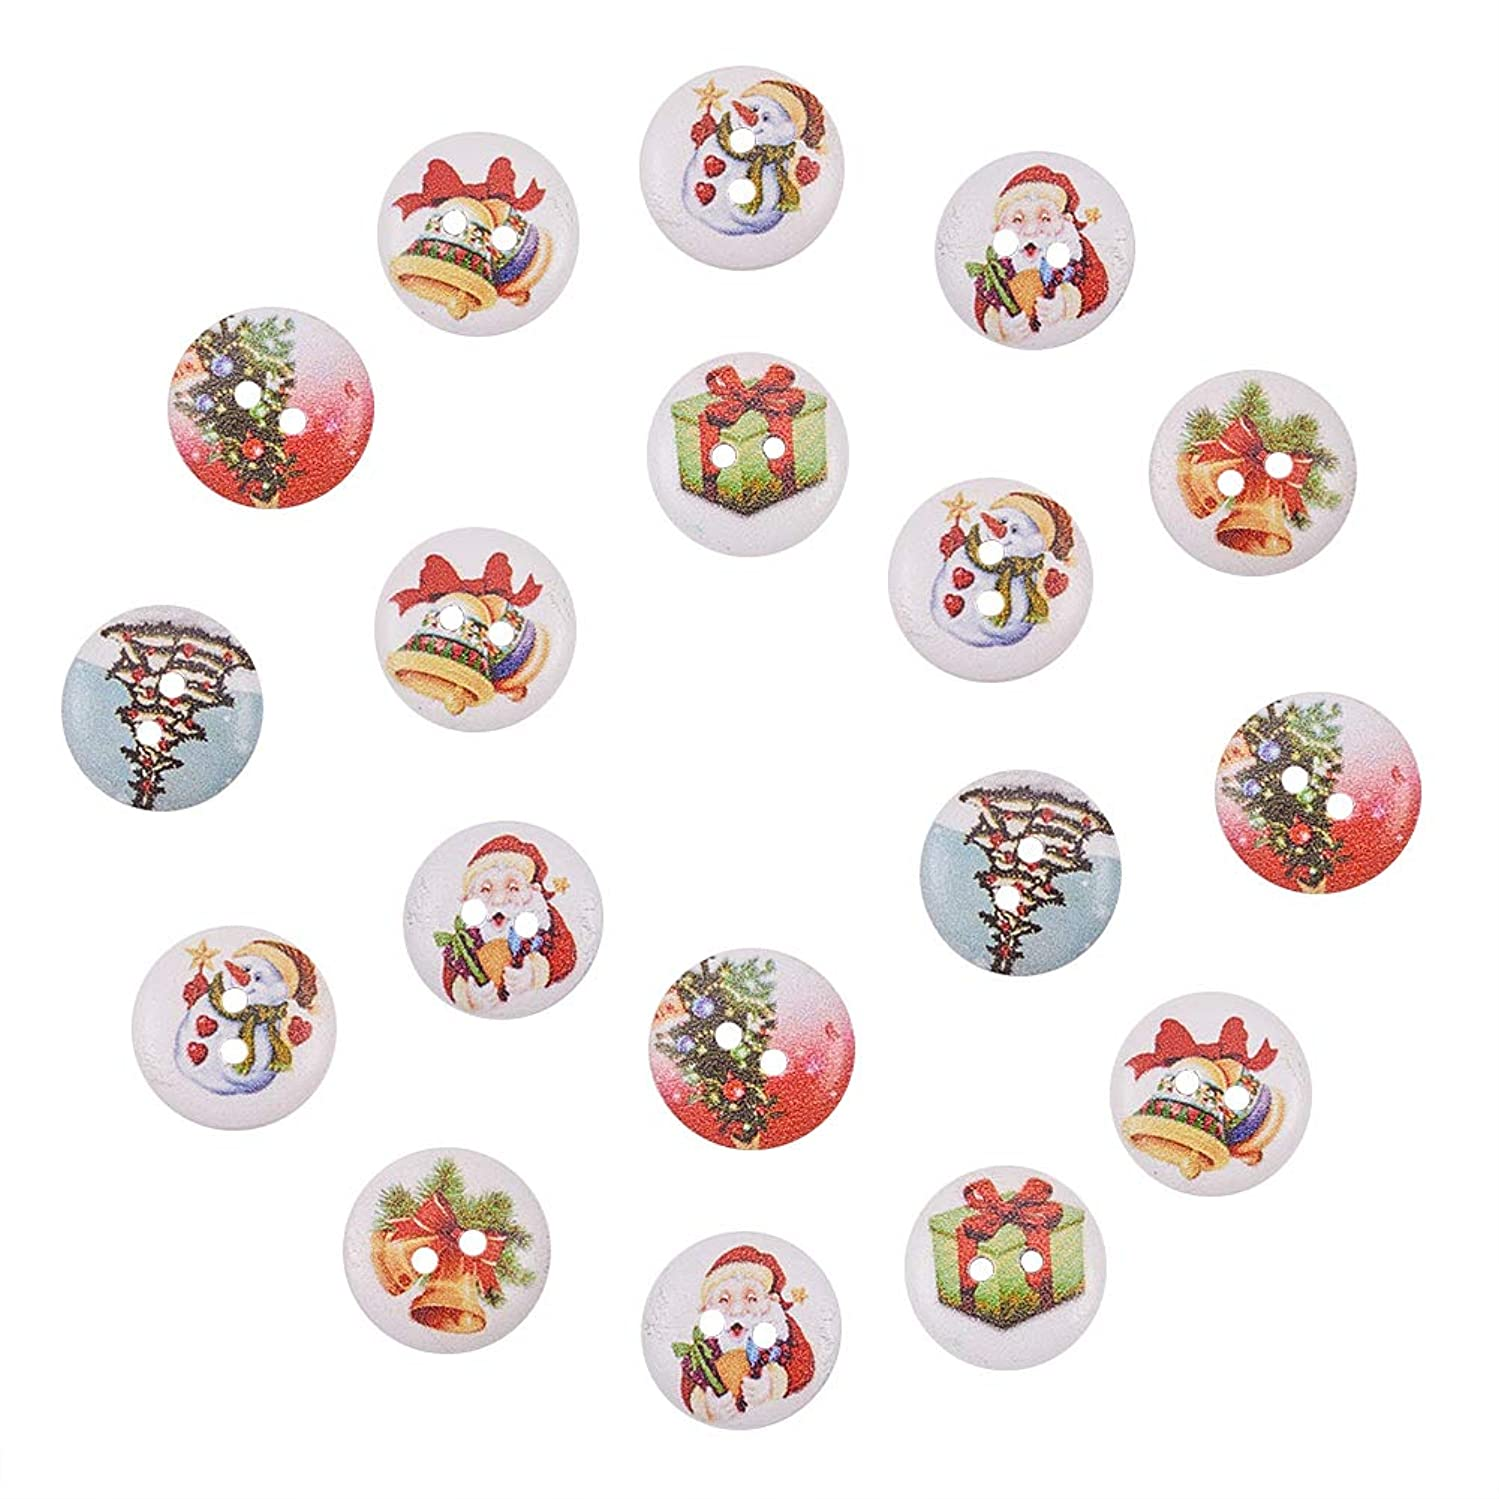 NBEADS 500 Pcs Holiday Buttons, 2-Hole Dyed Flat Round Printed Wooden Sewing Buttons for Christmas, Mixed Color, 15x4mm, Hole: 1.5mm